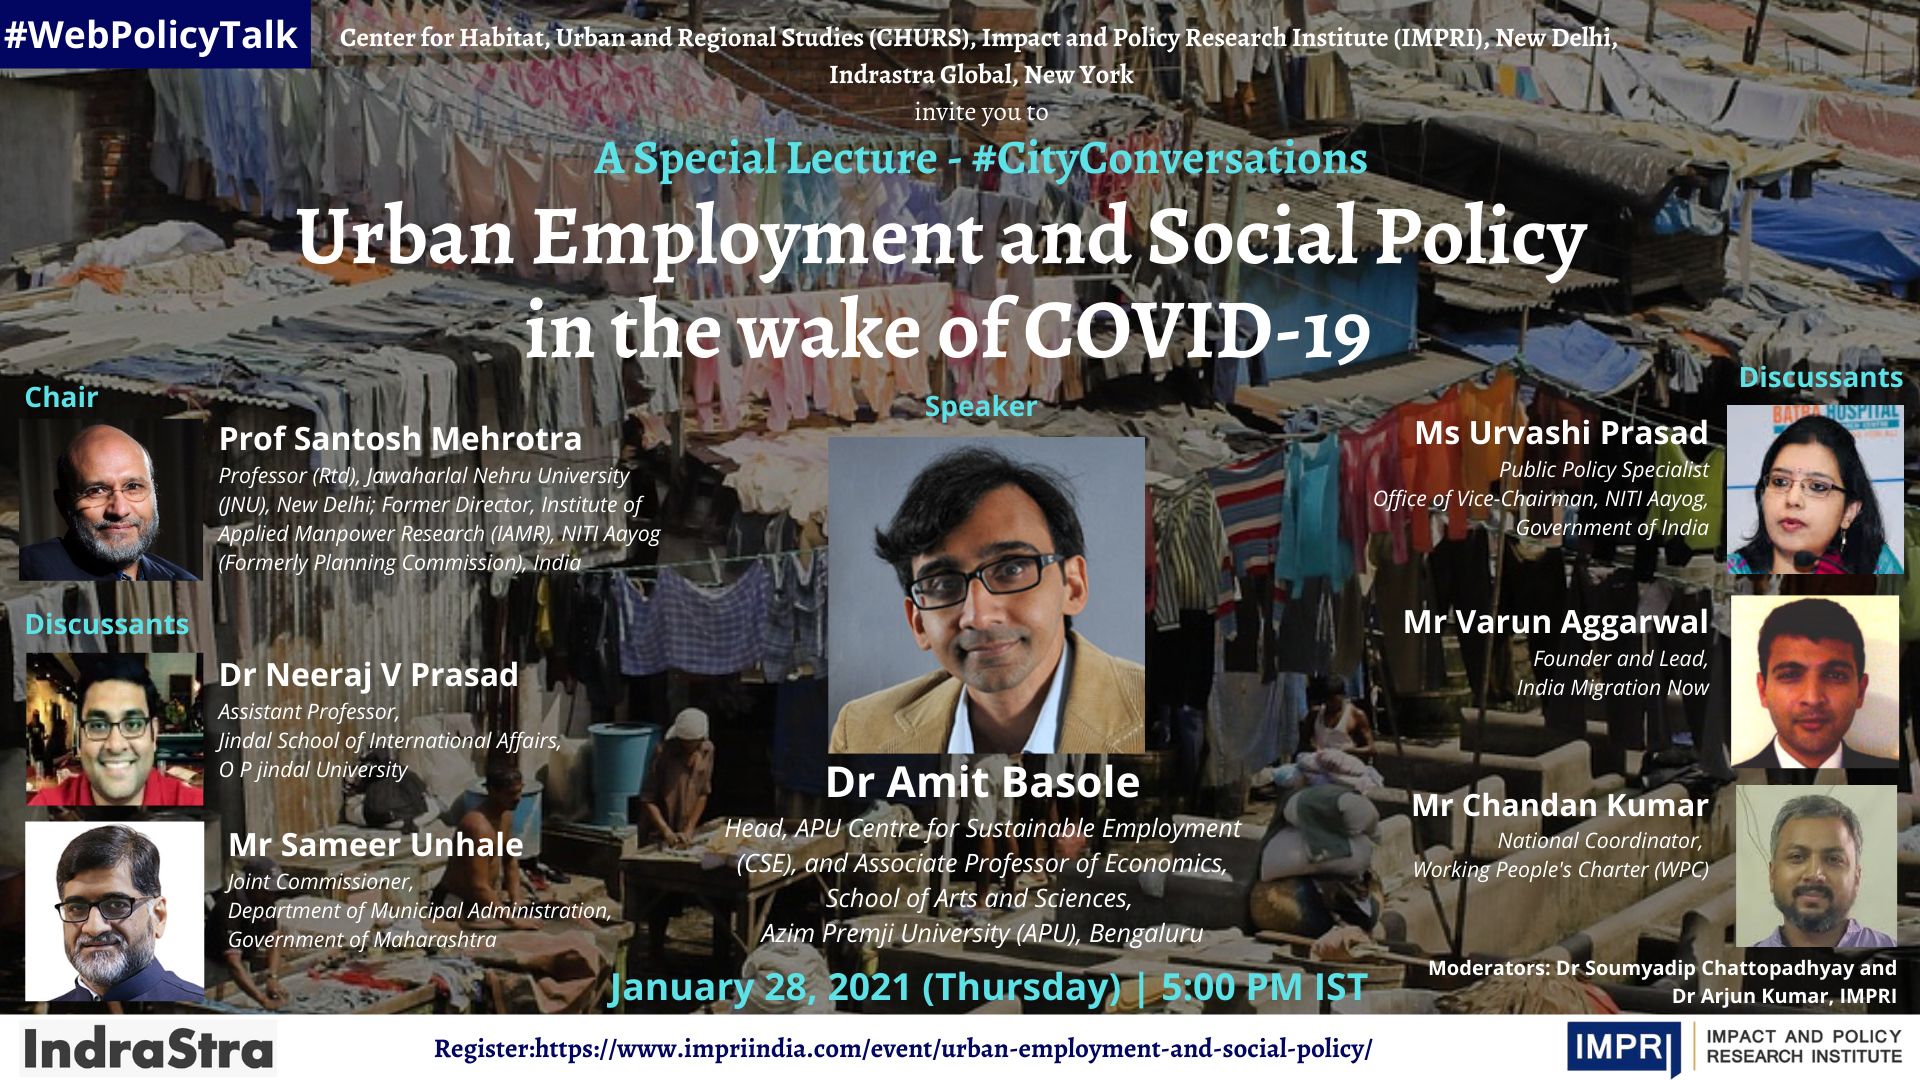 Urban employment and social policy in the wake of Covid-19